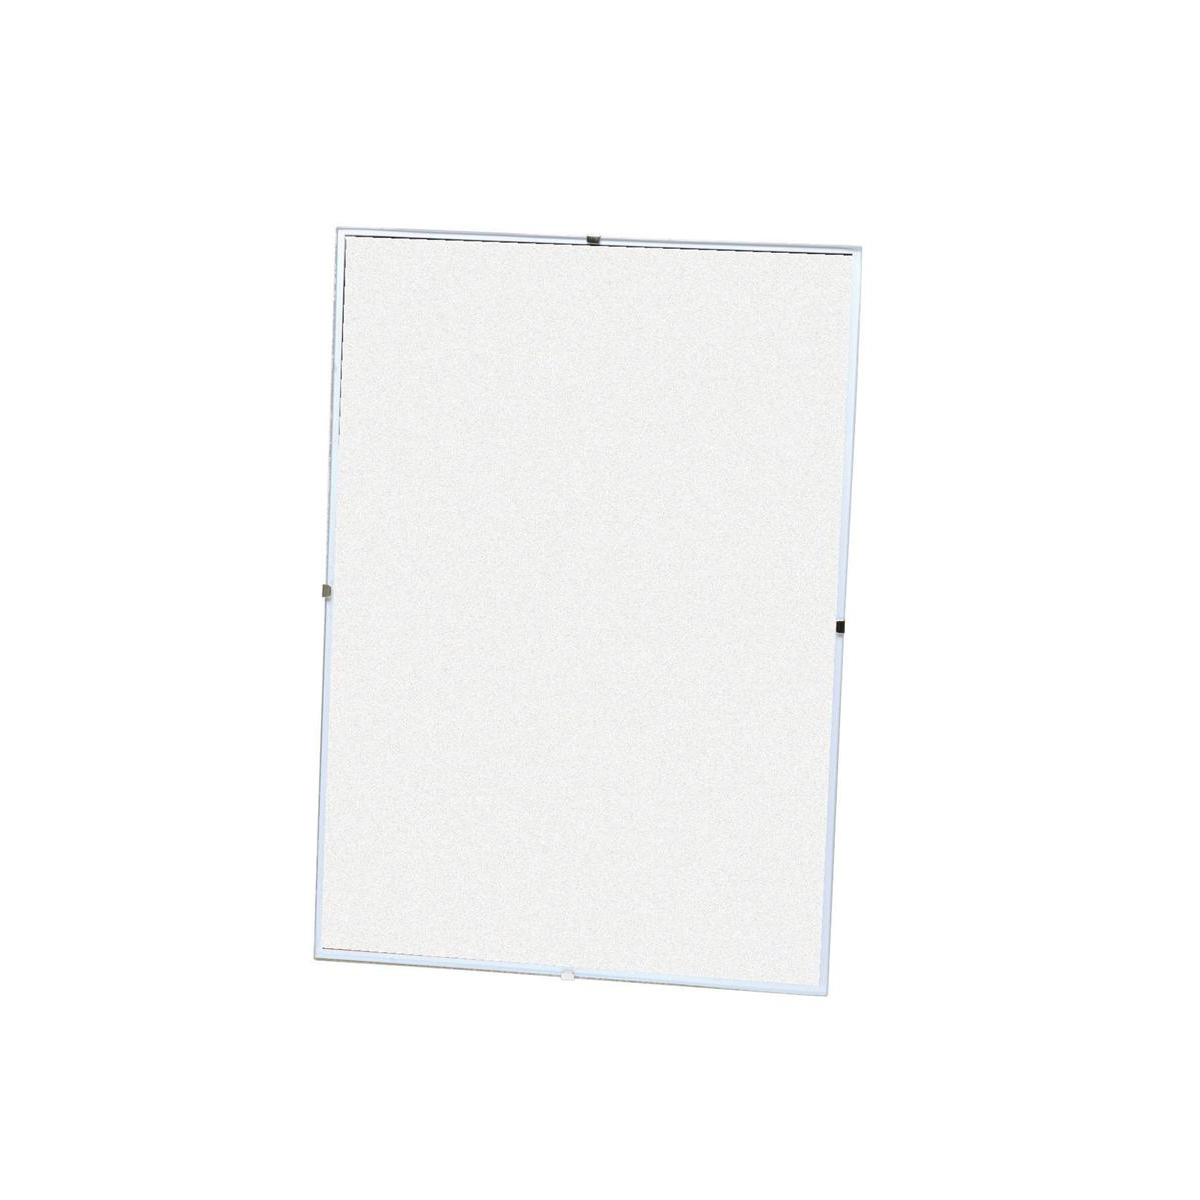 Picture frames 5 Star Office Clip Frame Plastic Front for Wall-mounting Back-loading A2 594x420mm Clear